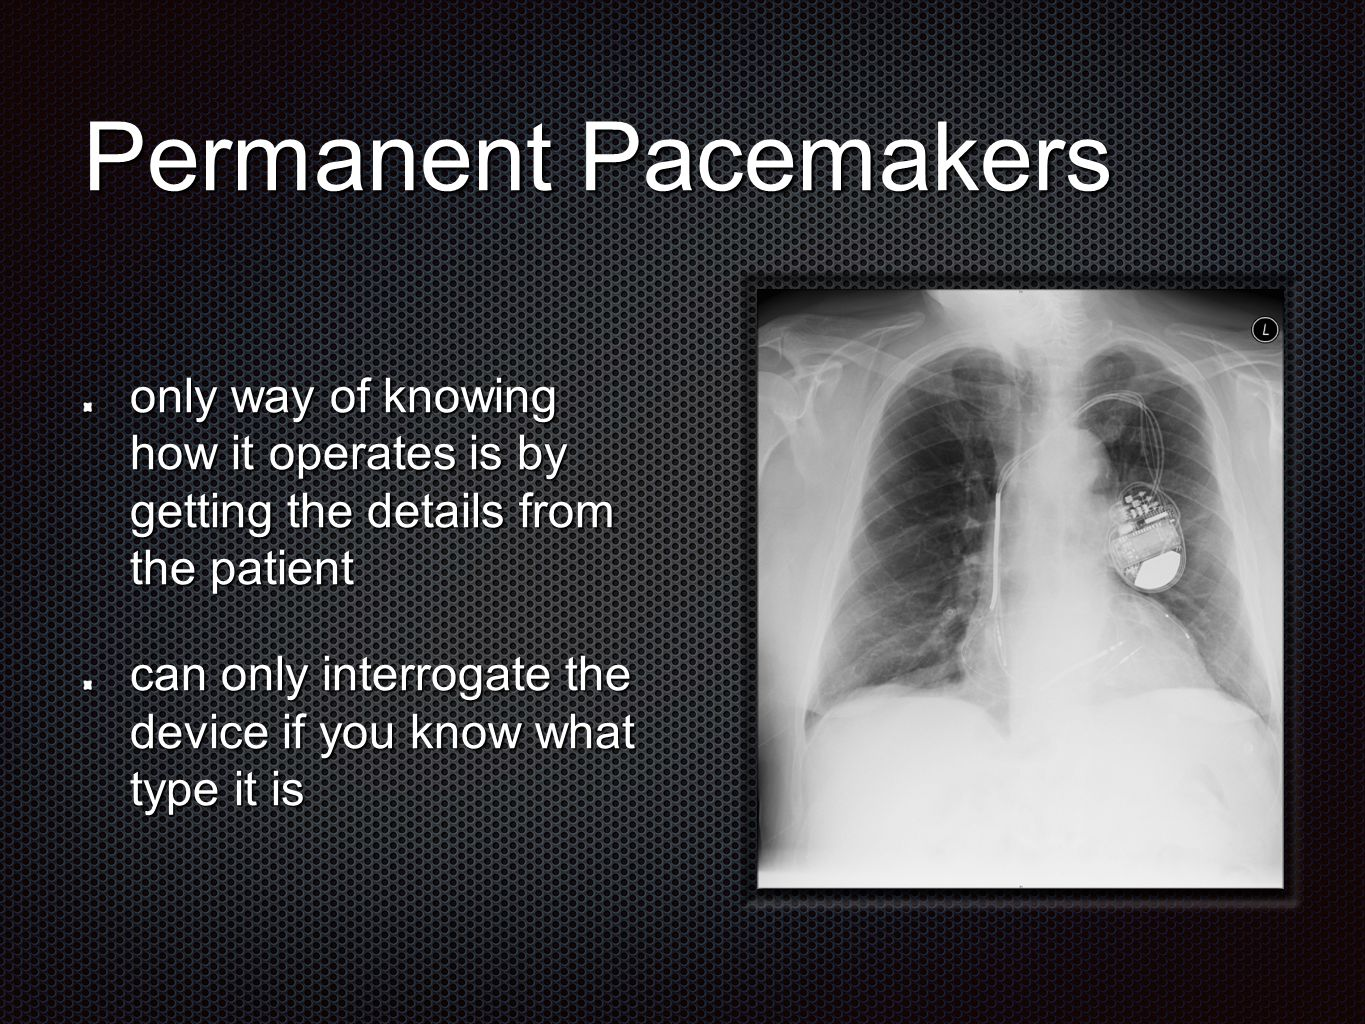 Pacing Modes Chamber paced O-none, A-atrial, V-ventricular, D-dual Chamber sensed O-none, A-atrial, V-ventricular, D-dual Response to sensing O-none, T-triggered, I-inhibited, D-dual